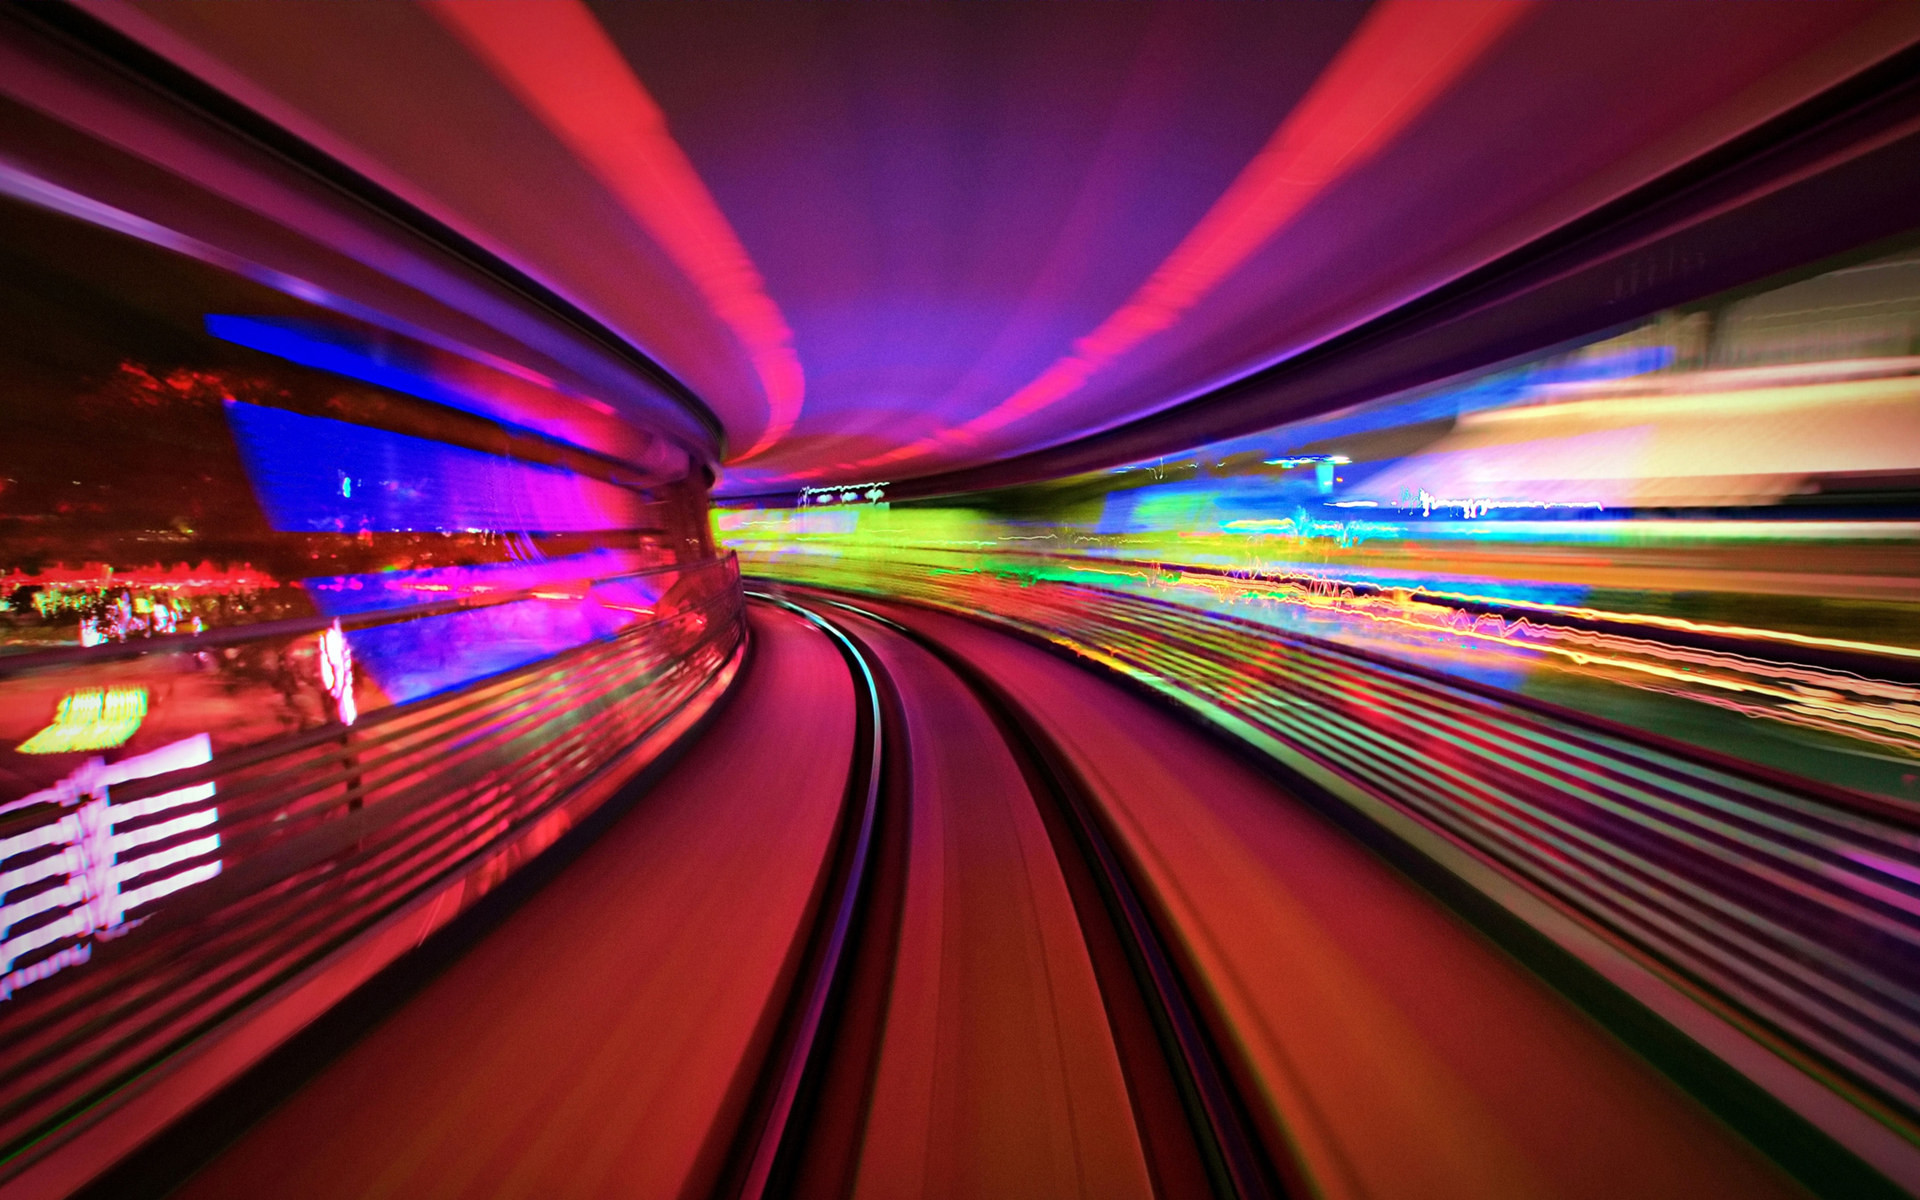 Res: 1920x1200, Tunnel Motion Wallpaper 50236